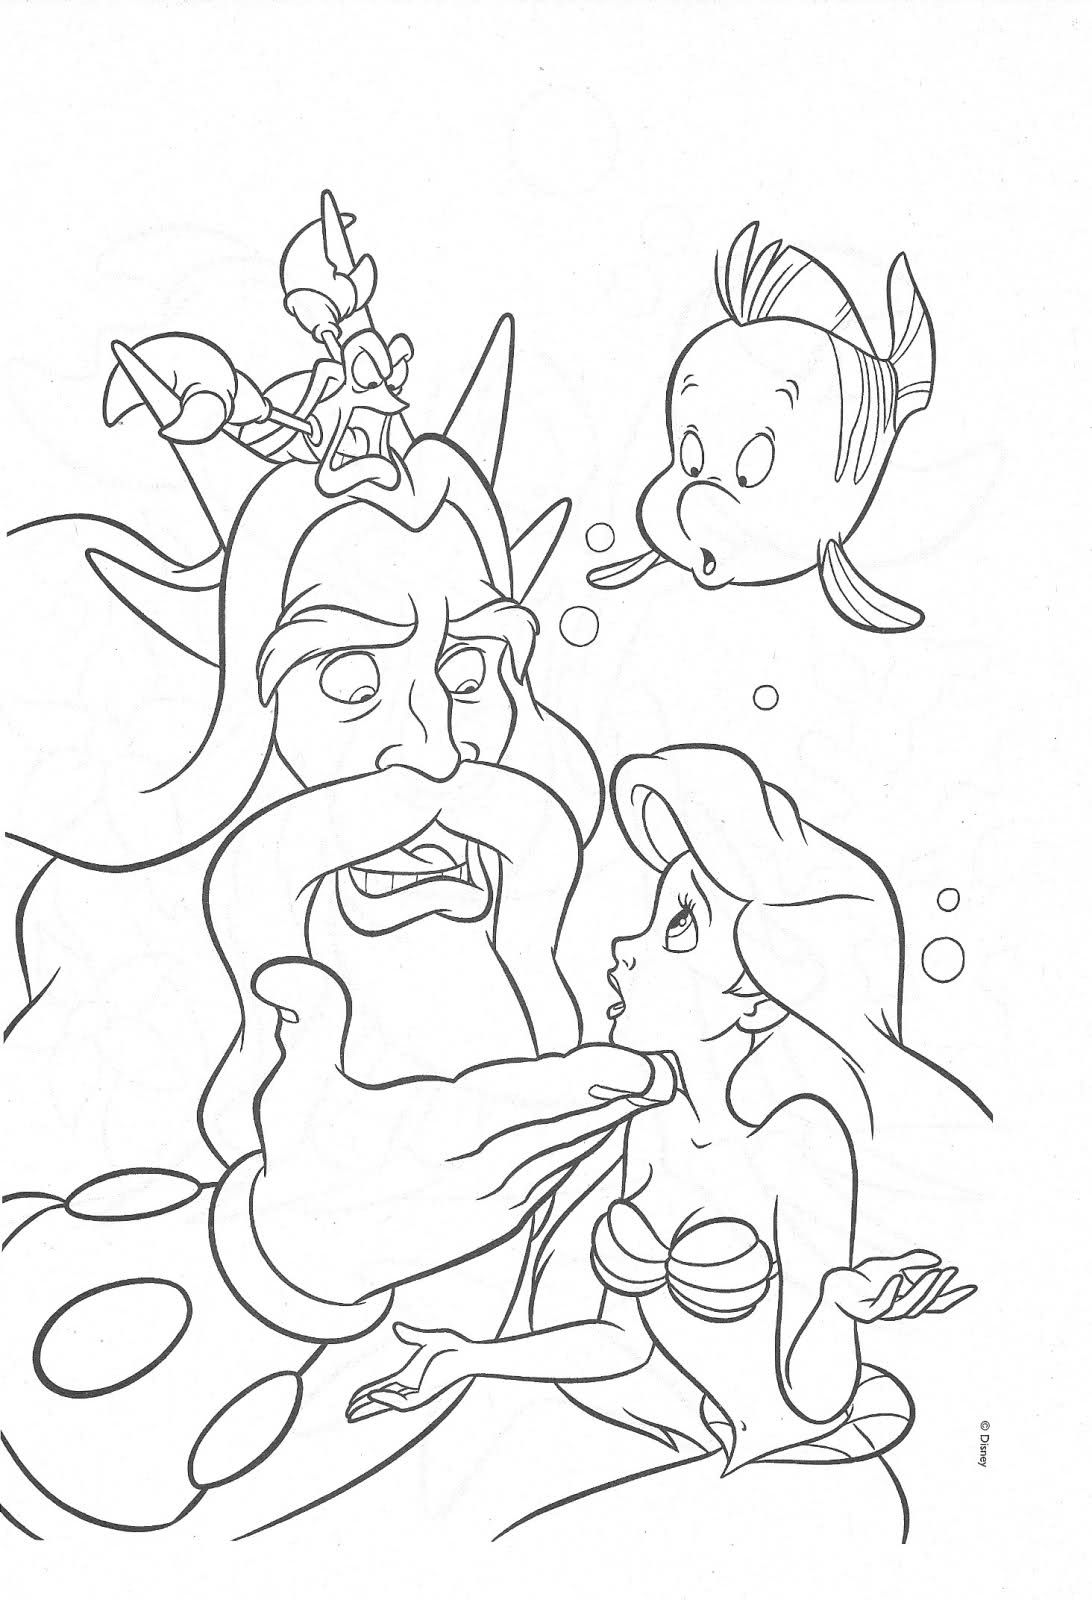 The Little Mermaid Coloring Page Coloring Pages